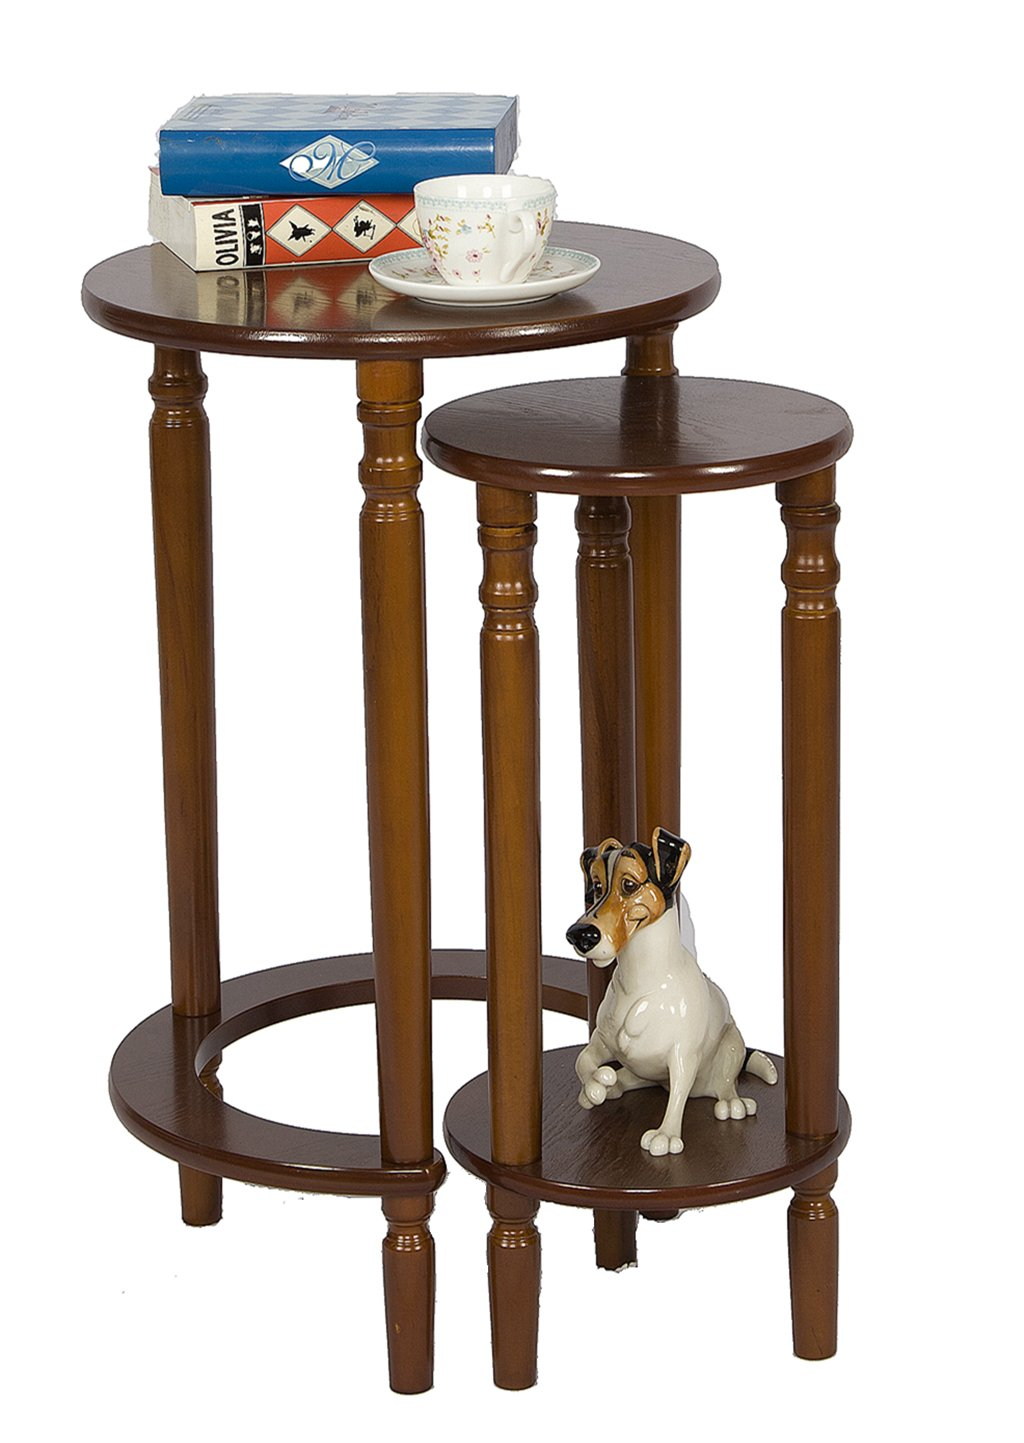 Accent Round Wood End Table Sofa Side Set of 2 for Small Spaces Coffee Nesting Tables (WALNUT)